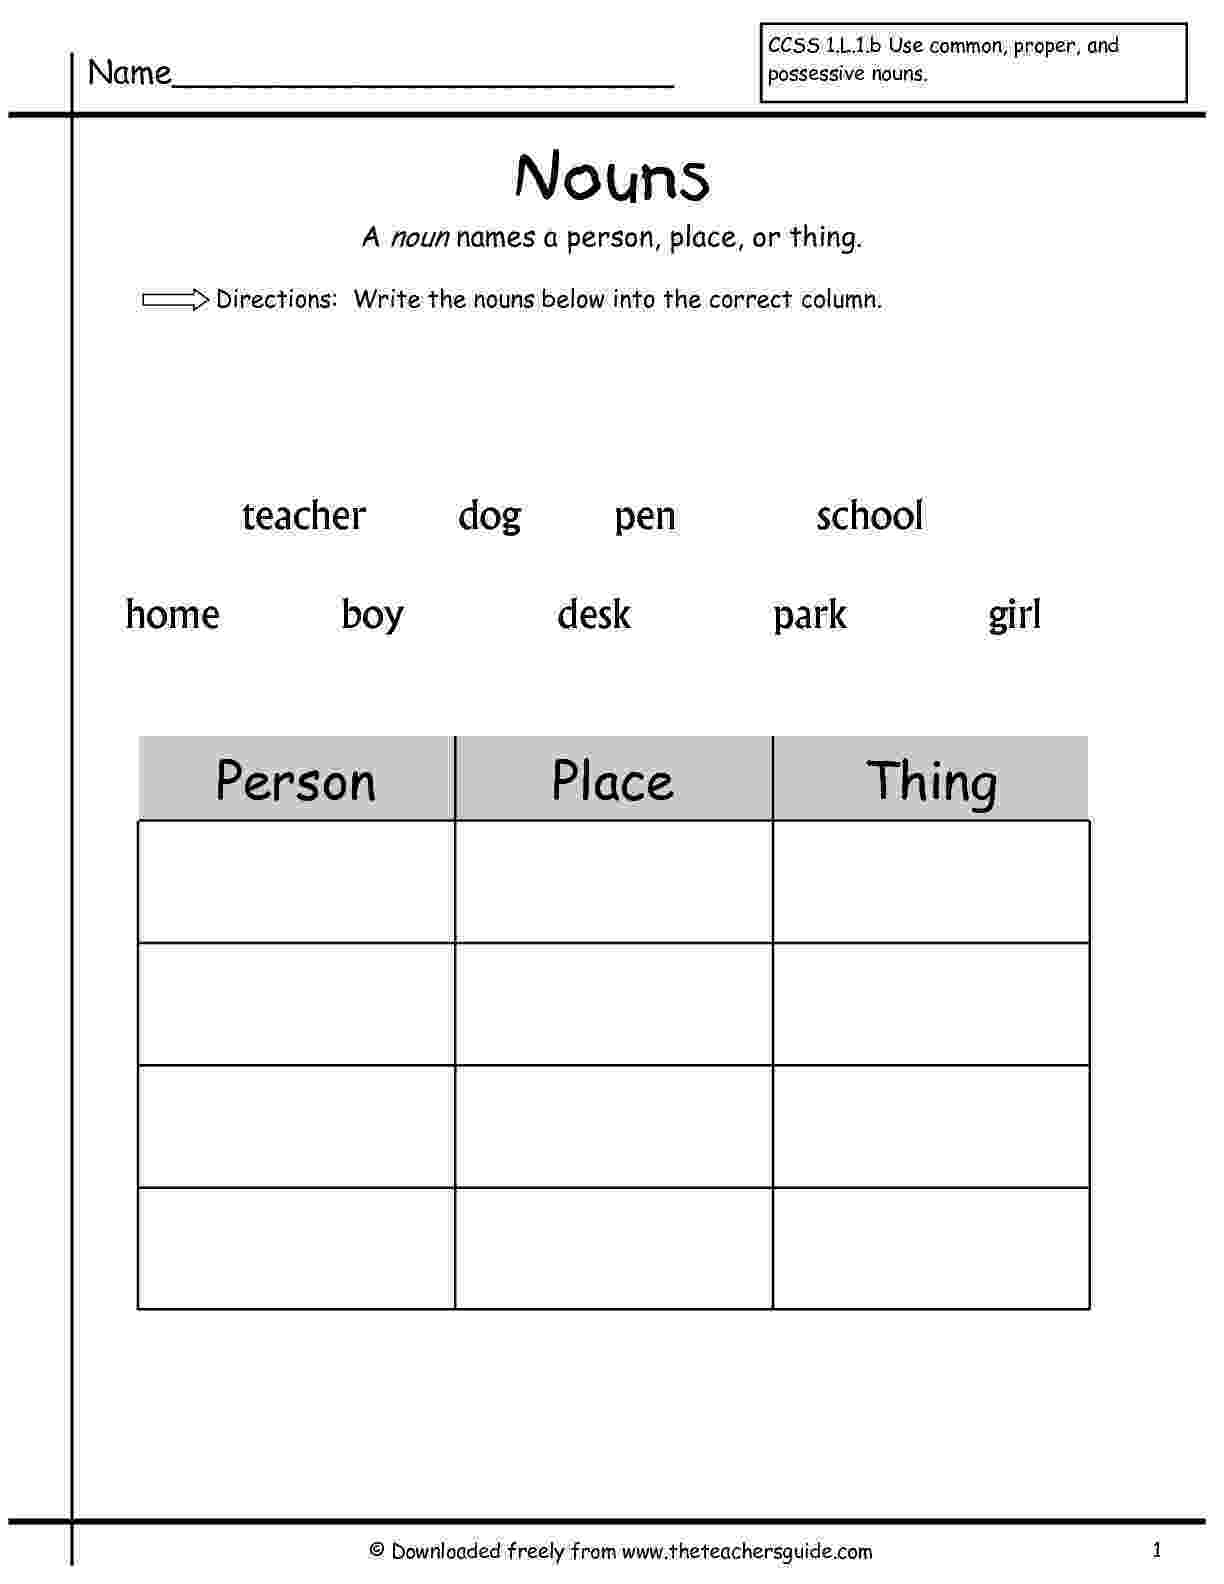 noun worksheets for grade 1 with answers possessive nouns grade 1 with worksheets answers for noun